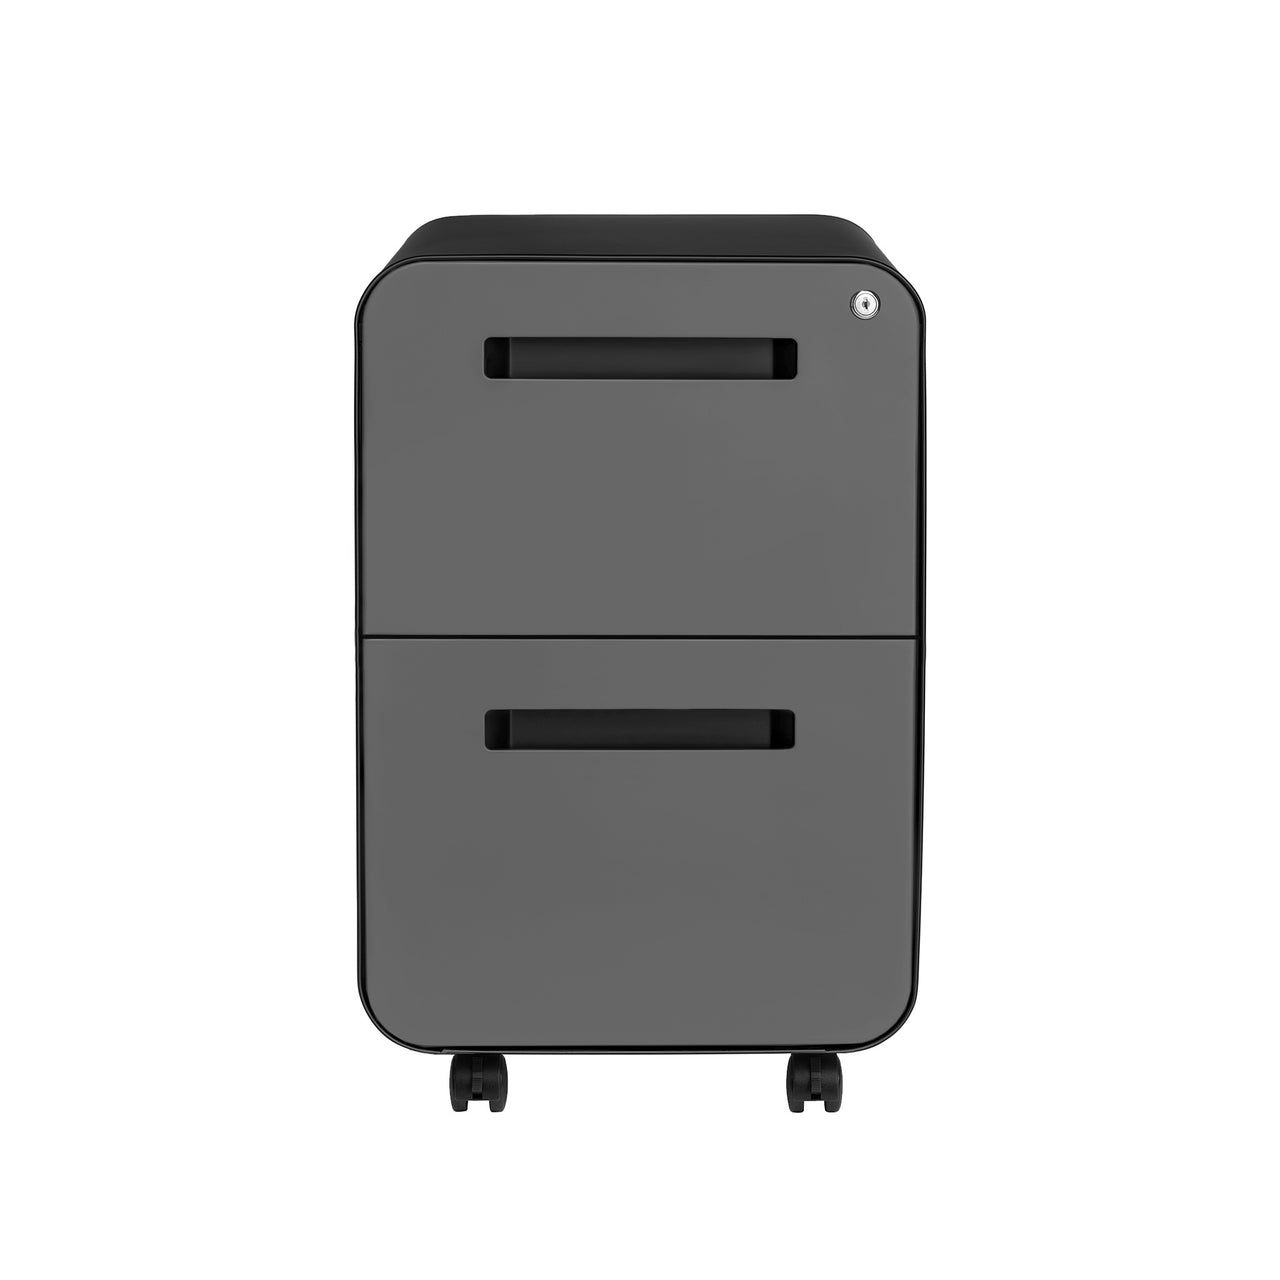 Stockpile Curve 2-Drawer File Cabinet (Black/Grey)